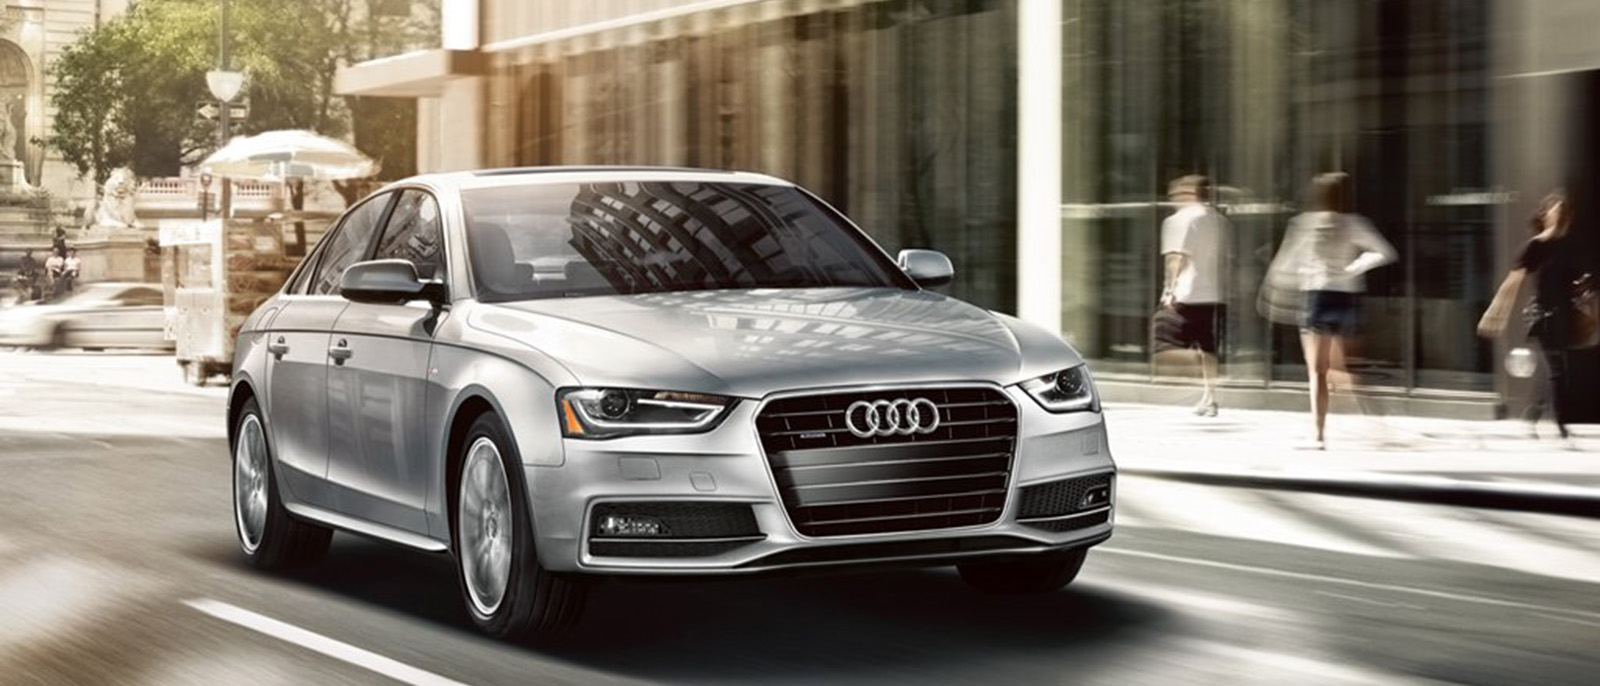 2015 Audi A4 Exterior on road